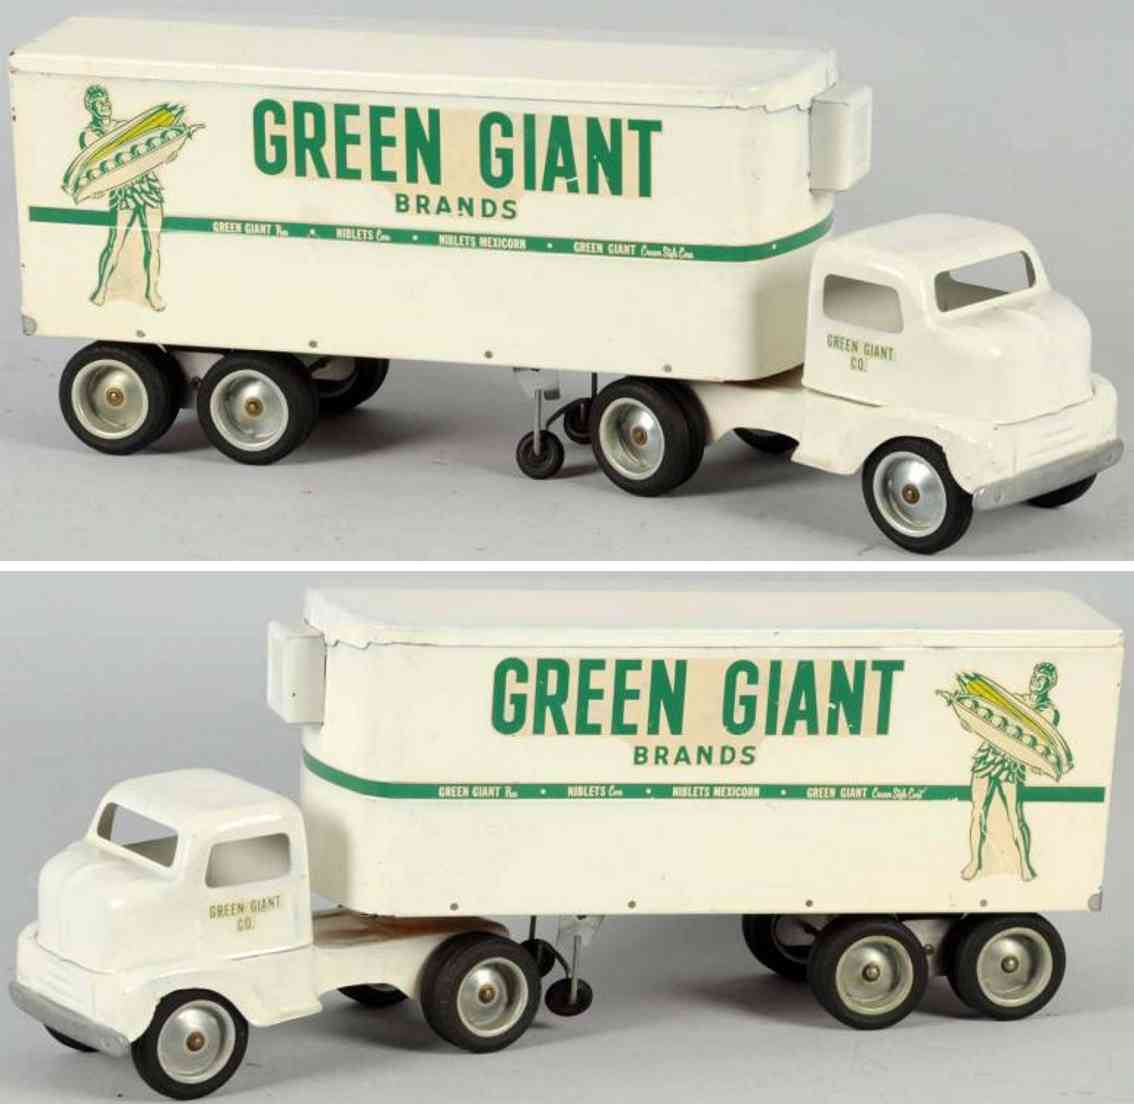 tonka toys 650-4 pressed steel toy green giant truck  green giantwhite